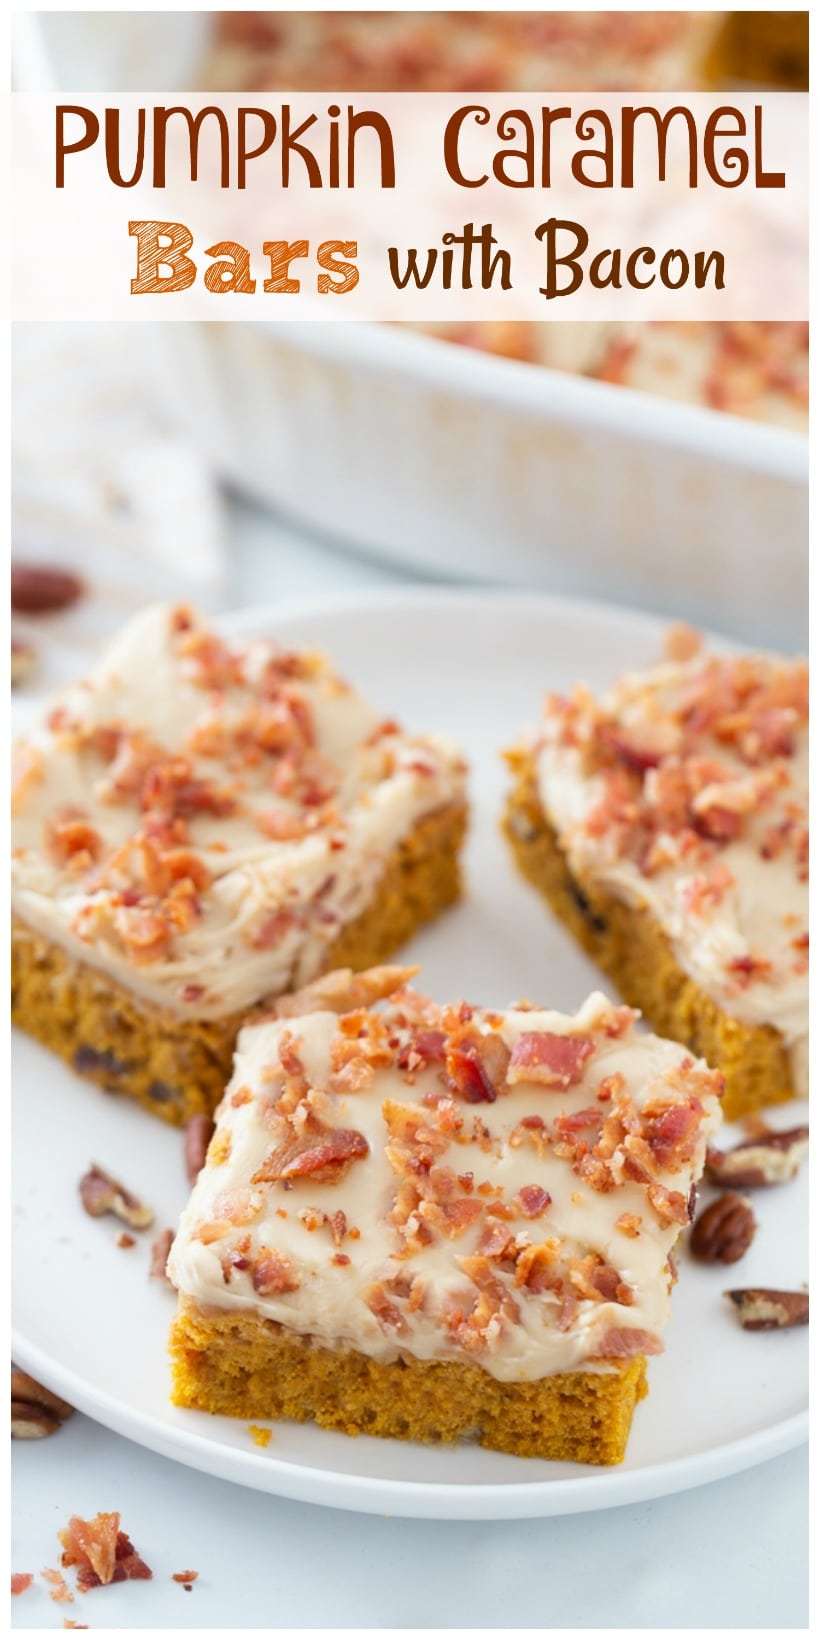 These Pumpkin Caramel Bars with Bacon are the salty-sweet dessert combination you have been craving. With bacon sprinkled on top and drippings in the pumpkin layer you are in for a treat. via @cmpollak1